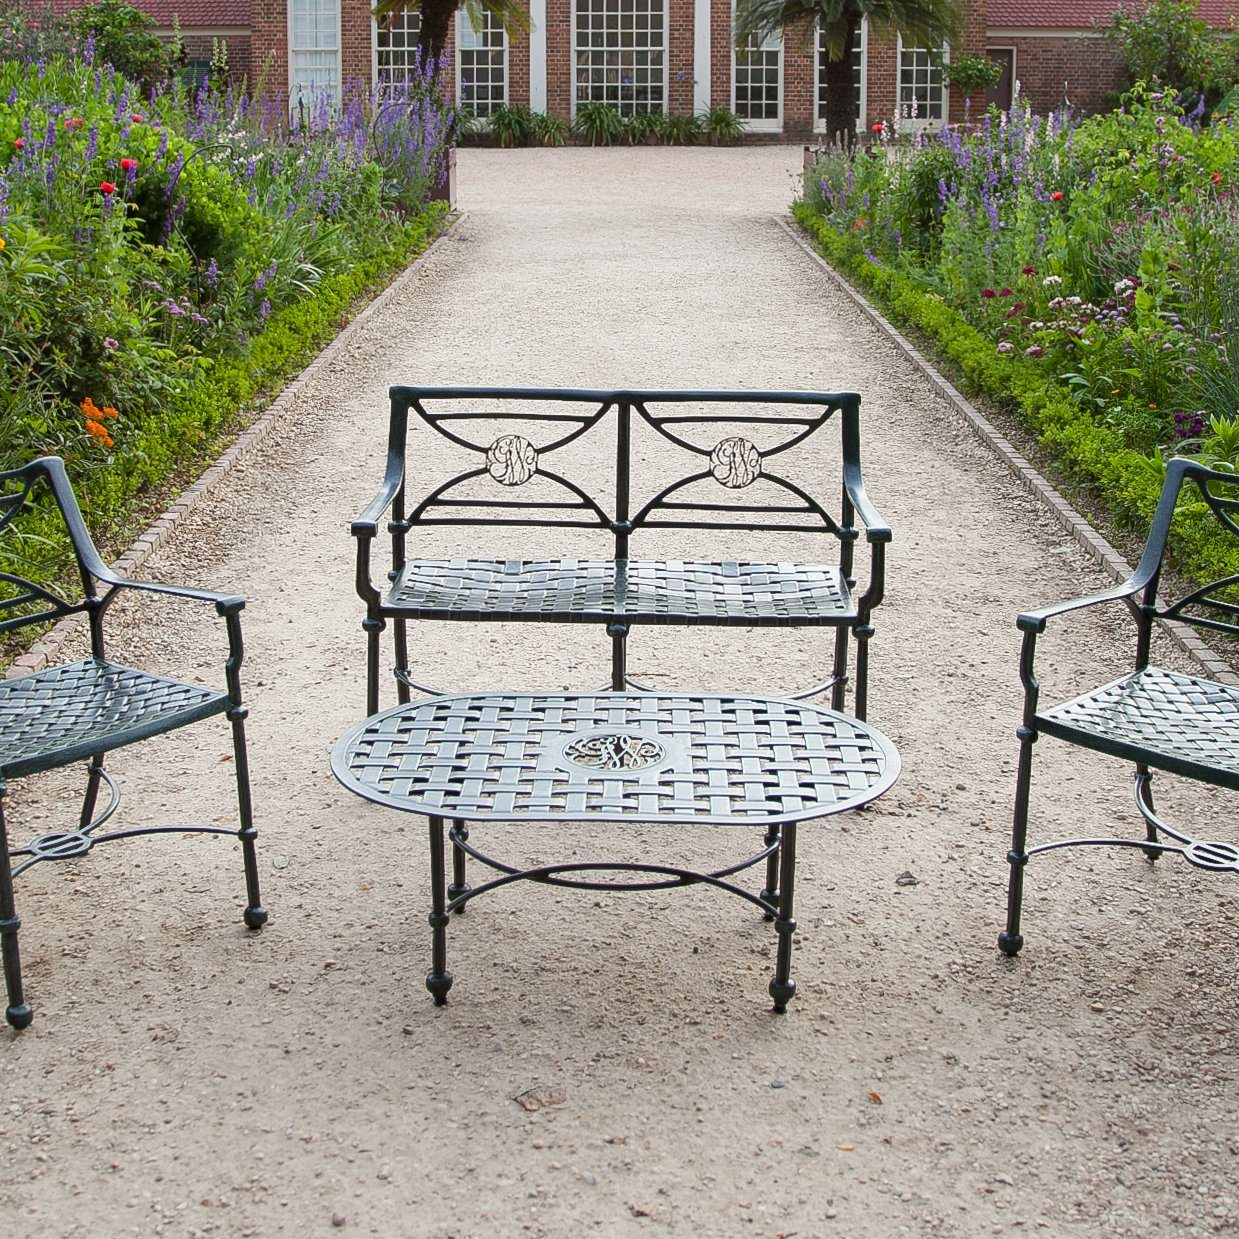 George Washington Cypher Garden Furniture